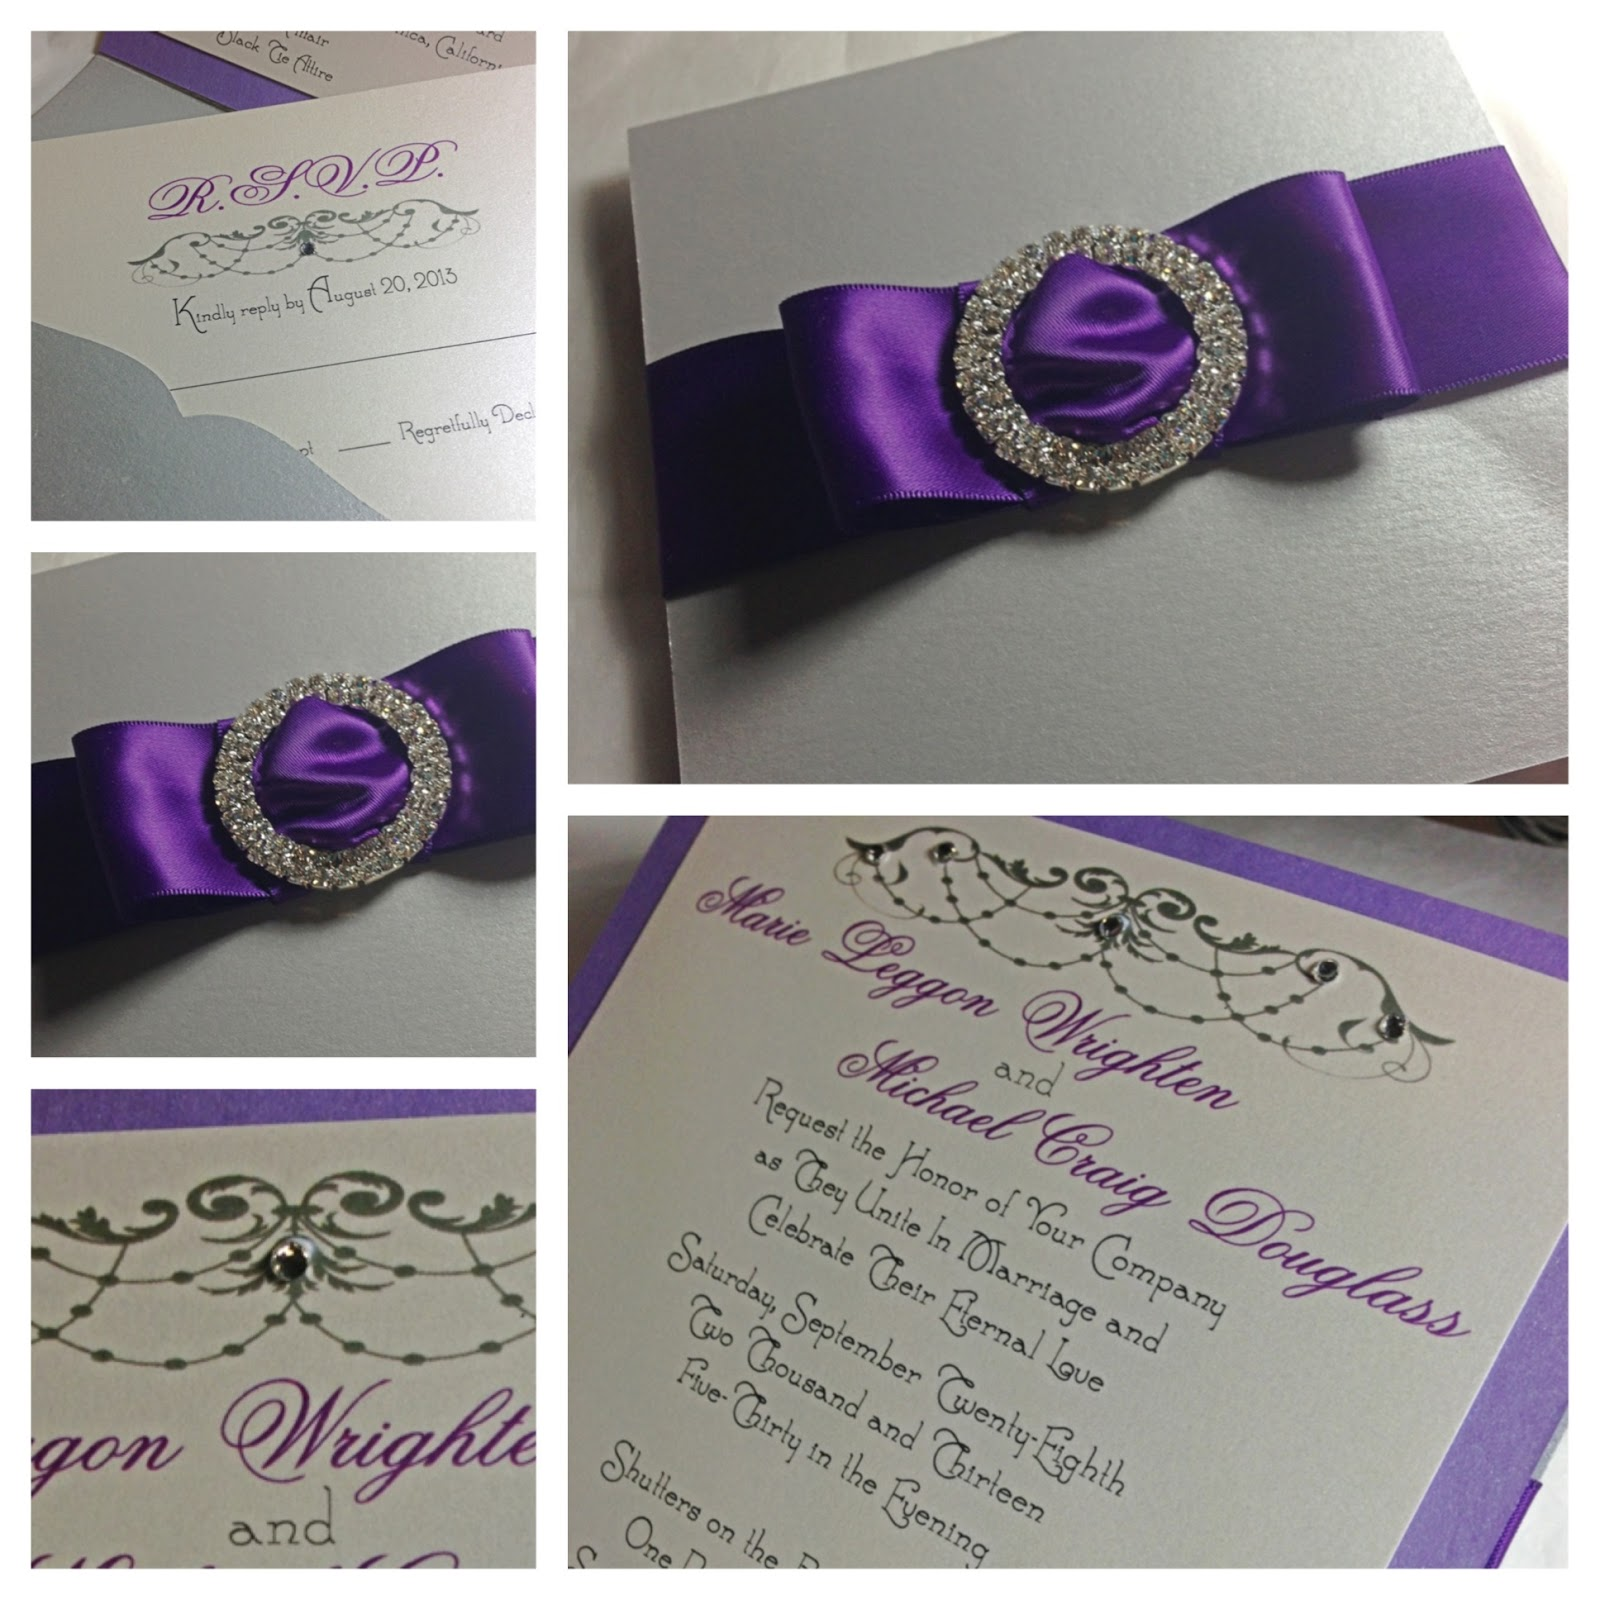 Couture Wedding Invitations was great invitations sample